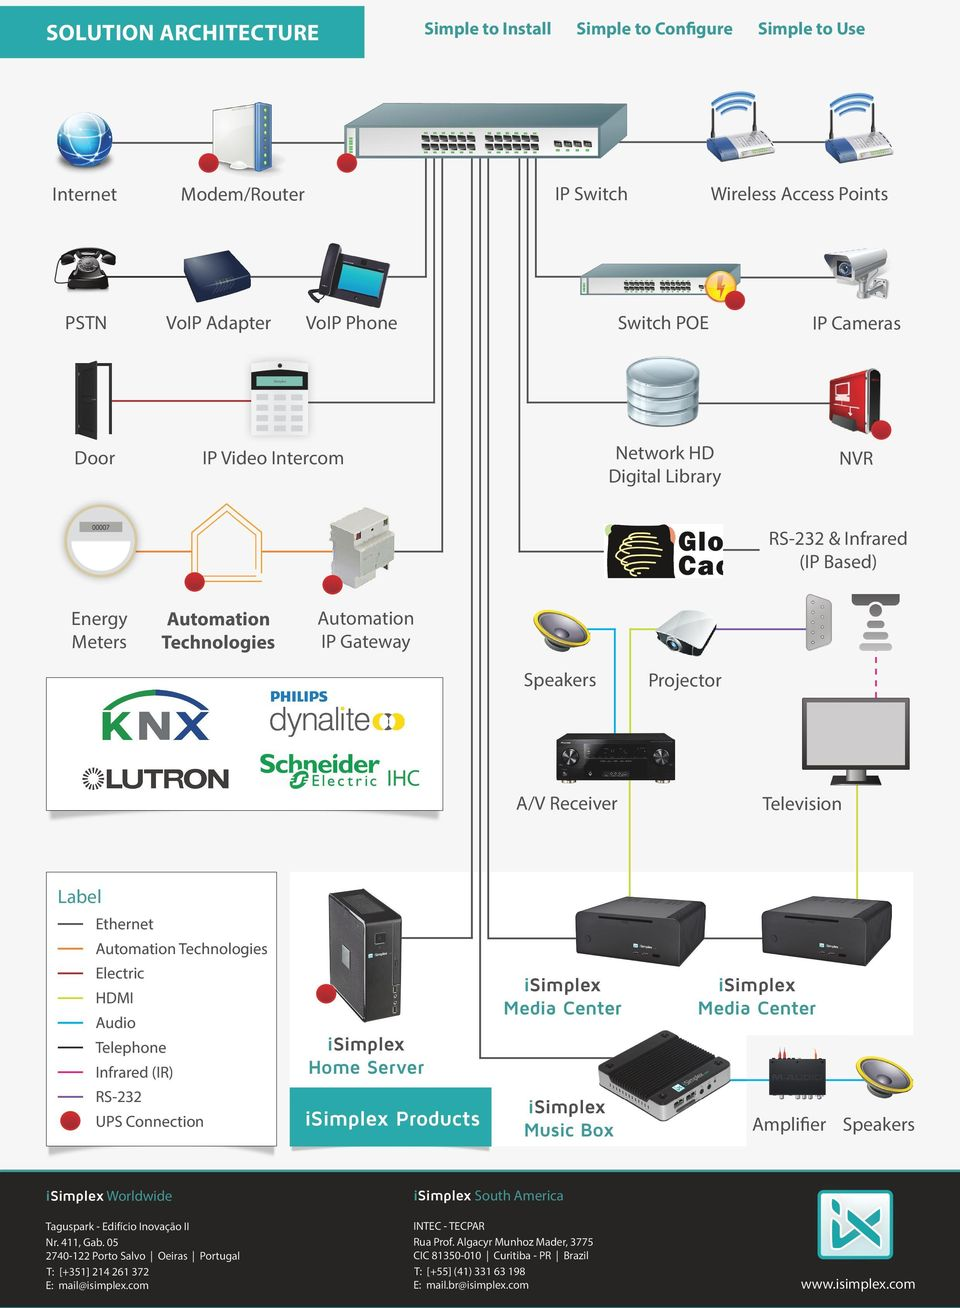 Automation IP Gateway Speakers IHC A/V Receiver Projector Television Label Ethernet Automation Technologies Electric Media Center HDMI Audio Telephone Infrared (IR) RS-232 UPS Connection Media Center